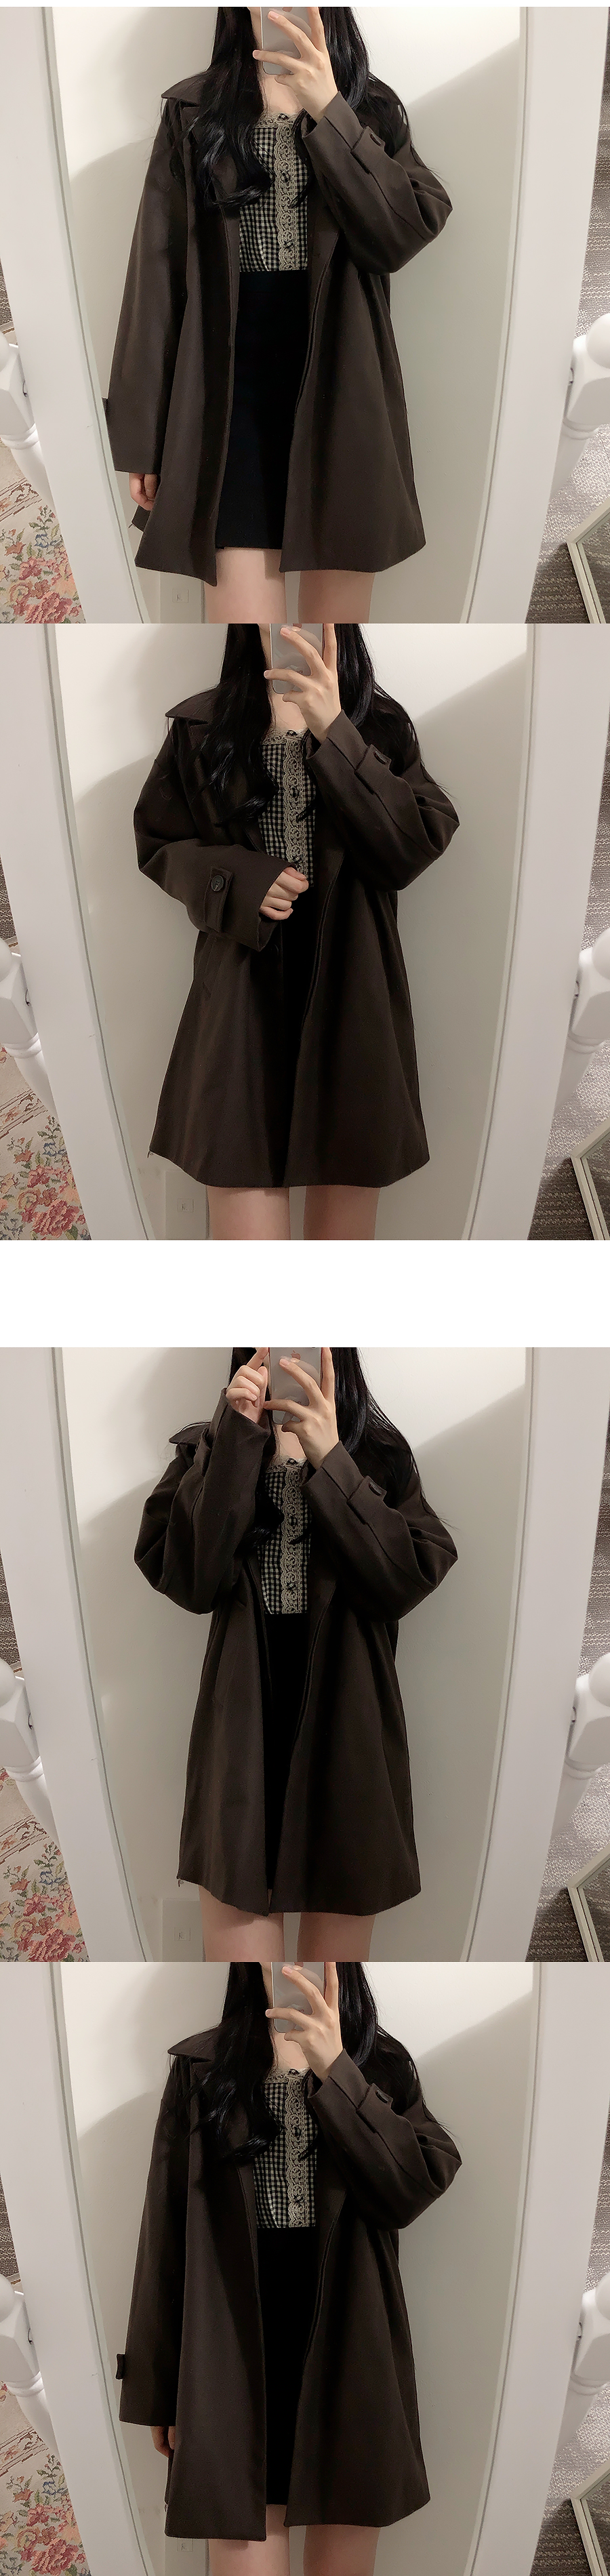 Self-made ♥ ganache wool snap button collar coat